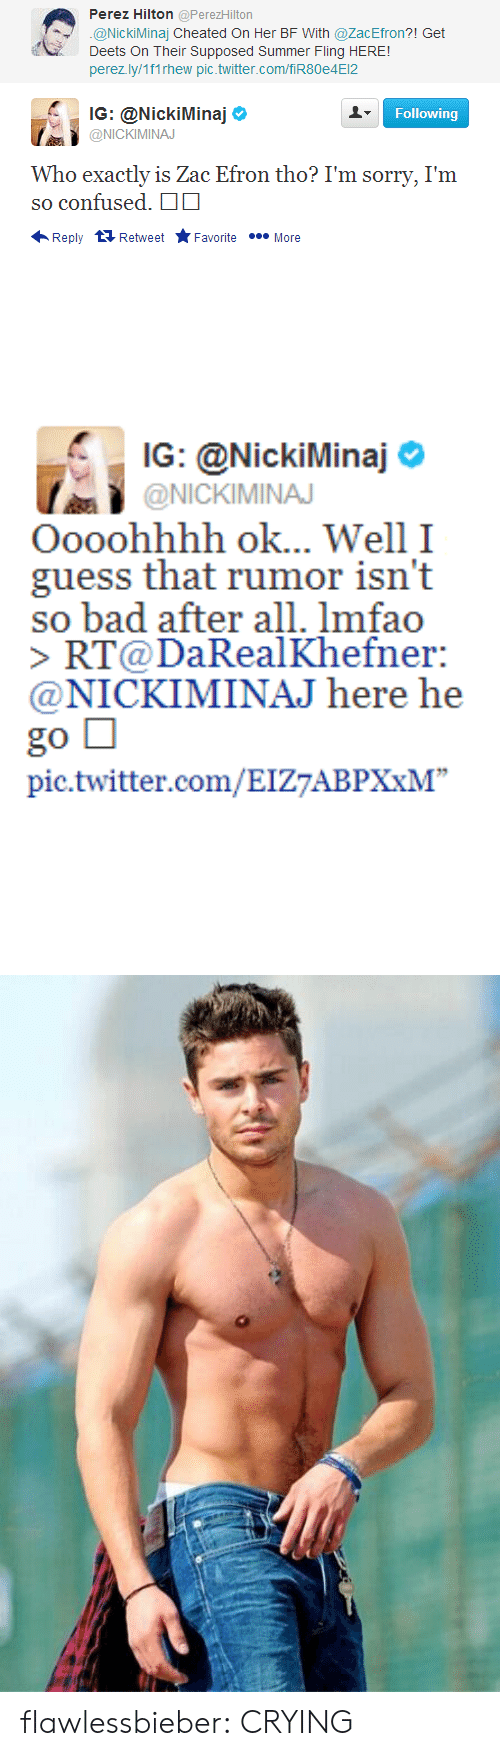 "perez hilton: Perez Hilton @PerezHilton  @NickiMinaj Cheated On Her BF With @ZacEfron?! Get  Deets On Their Supposed Summer Fling HERE!  perezly/1f1rhew pic.twitter.com/fiR80e4E12   . IG: @NickiMinaj Ф  Following  @NICKIMINAJ  Who exactly is Zac Efron tho? I'm sorry, I'm  so confused.  Reply t Retweet ★Favorite  More   IG: @NickilMinaj o  @NICKIMINA  Oooohhhh ok... Well I  guess that rumor isn't  so bad after all. lmfao  RT@DaRealKhefner:  @NICKIMINAJ here he  go □  pic.twitter.com/EIZ7ABPXxM"" flawlessbieber:  CRYING"